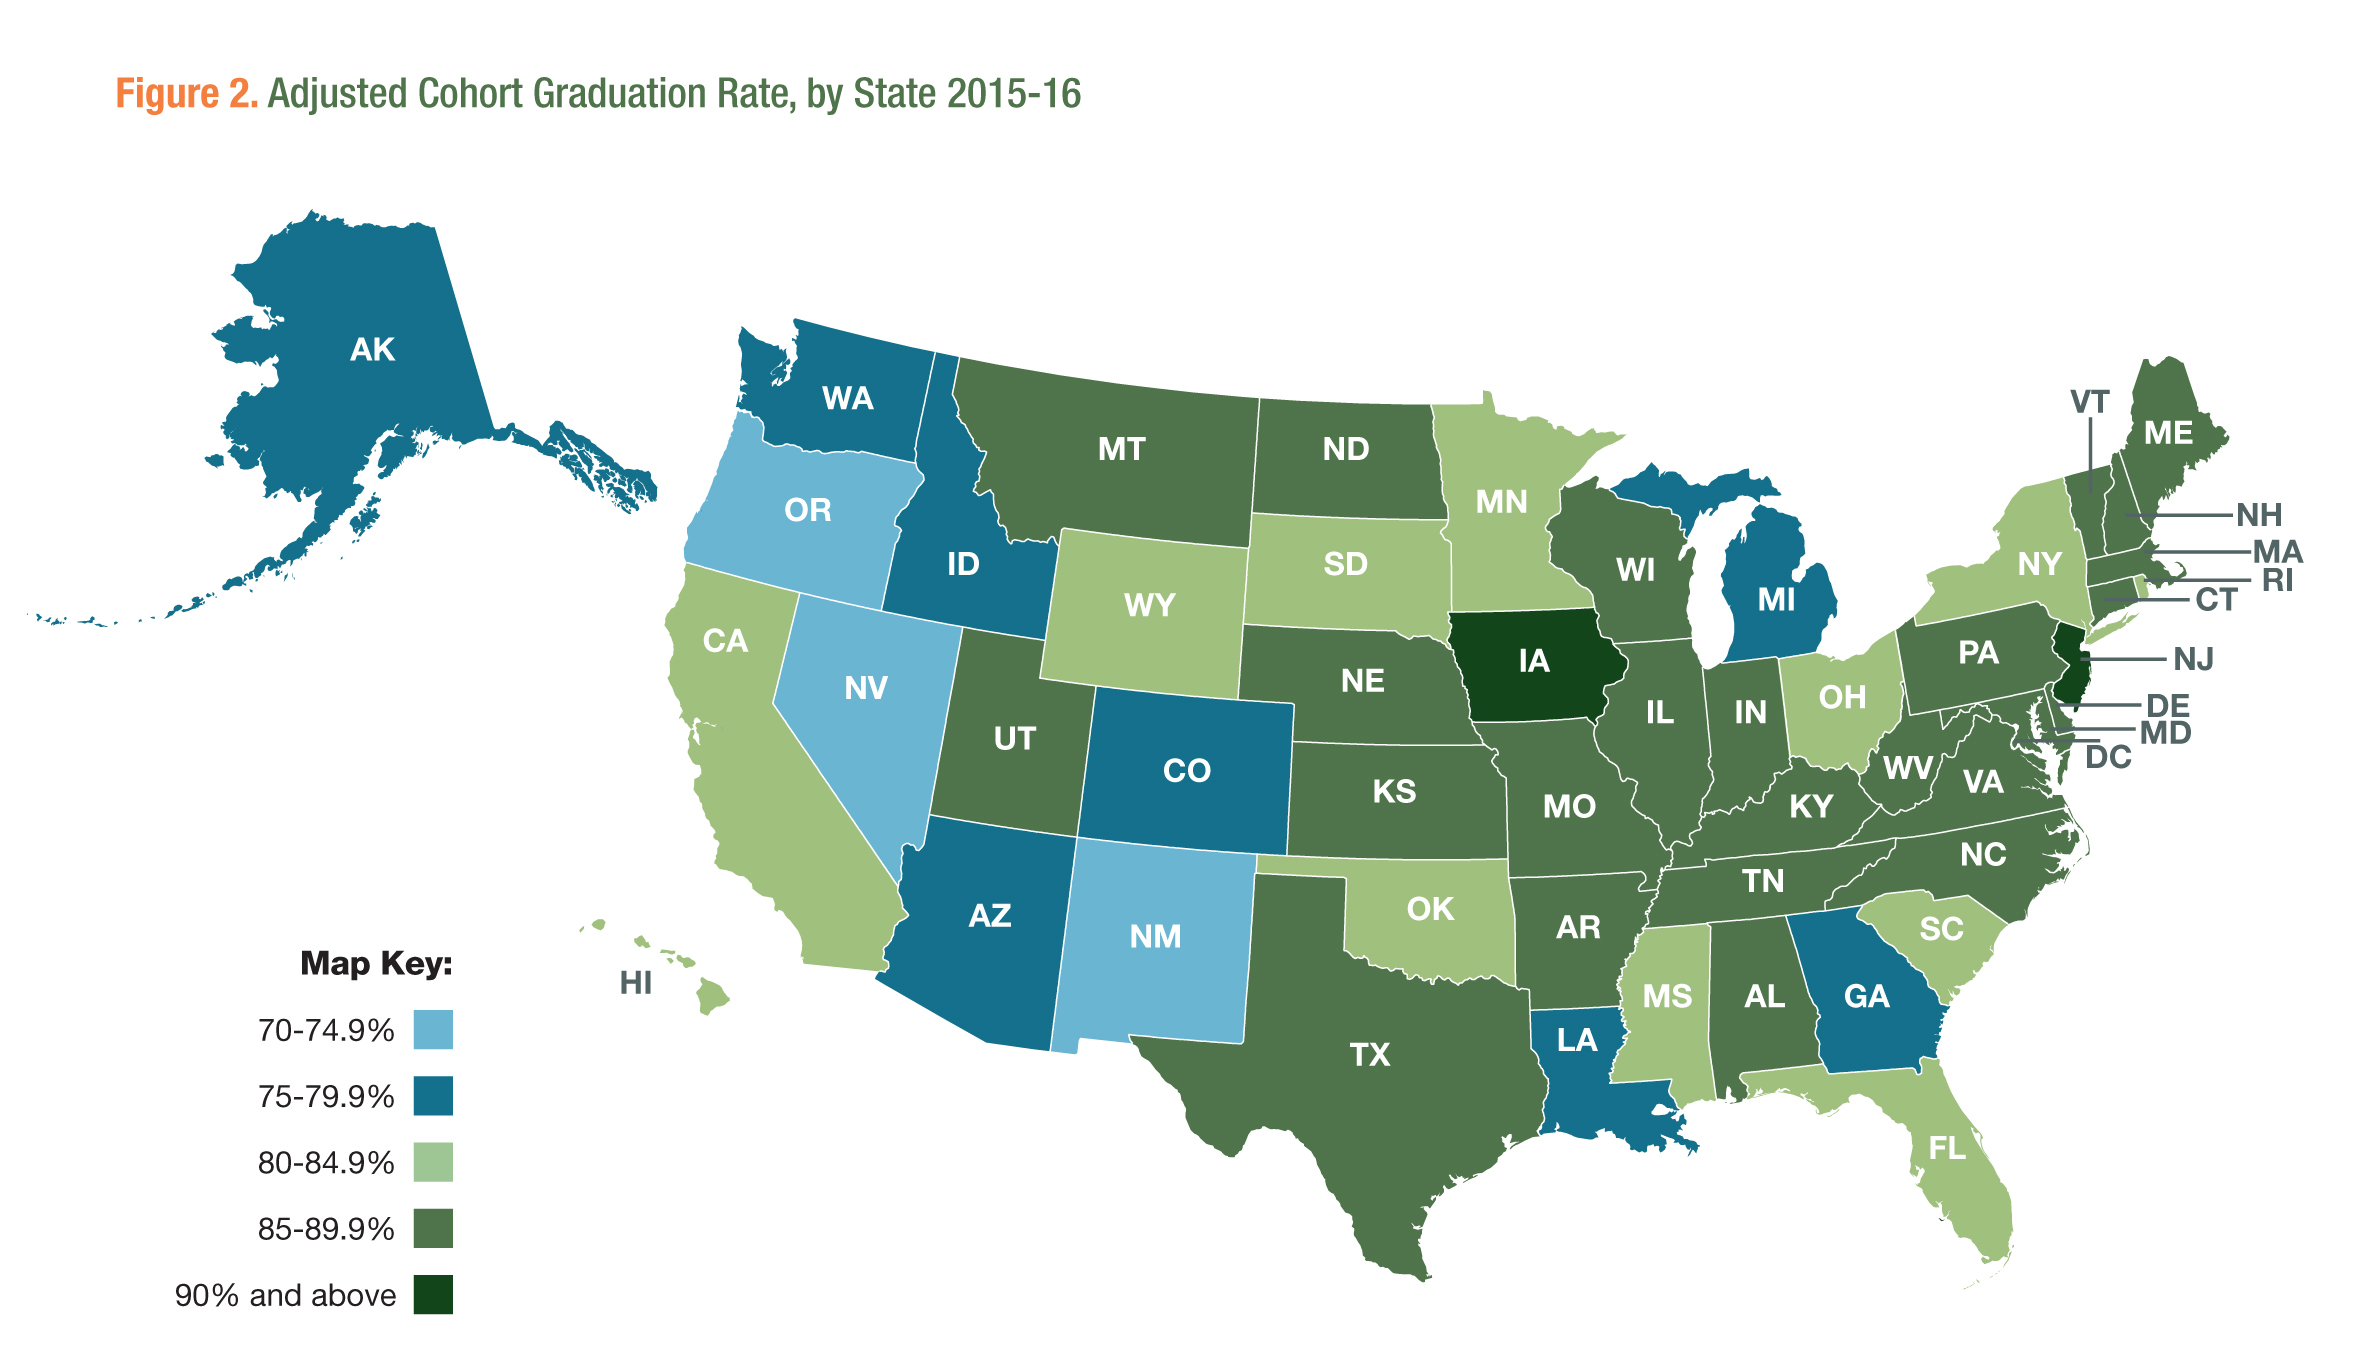 Figure 2. Adjusted Cohort Graduation Rate by State 2015-16